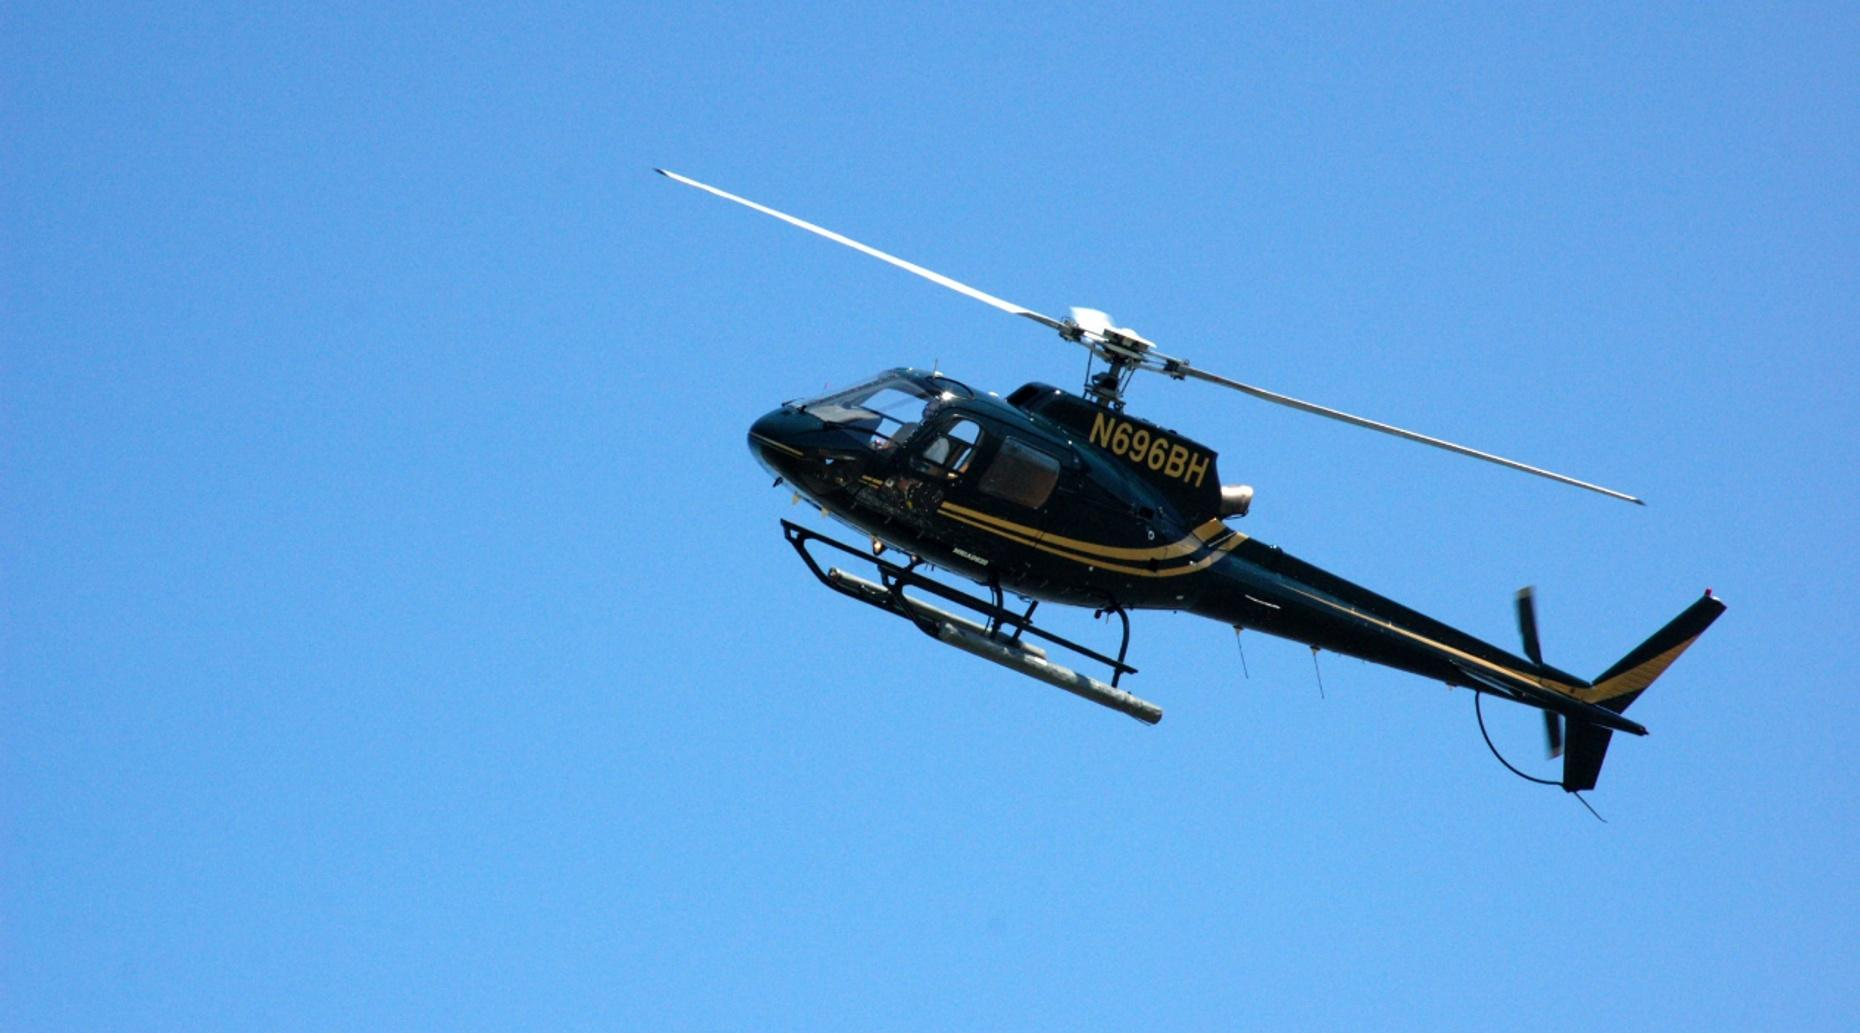 Texas Hill Country Helicopter Tour in Dripping Springs